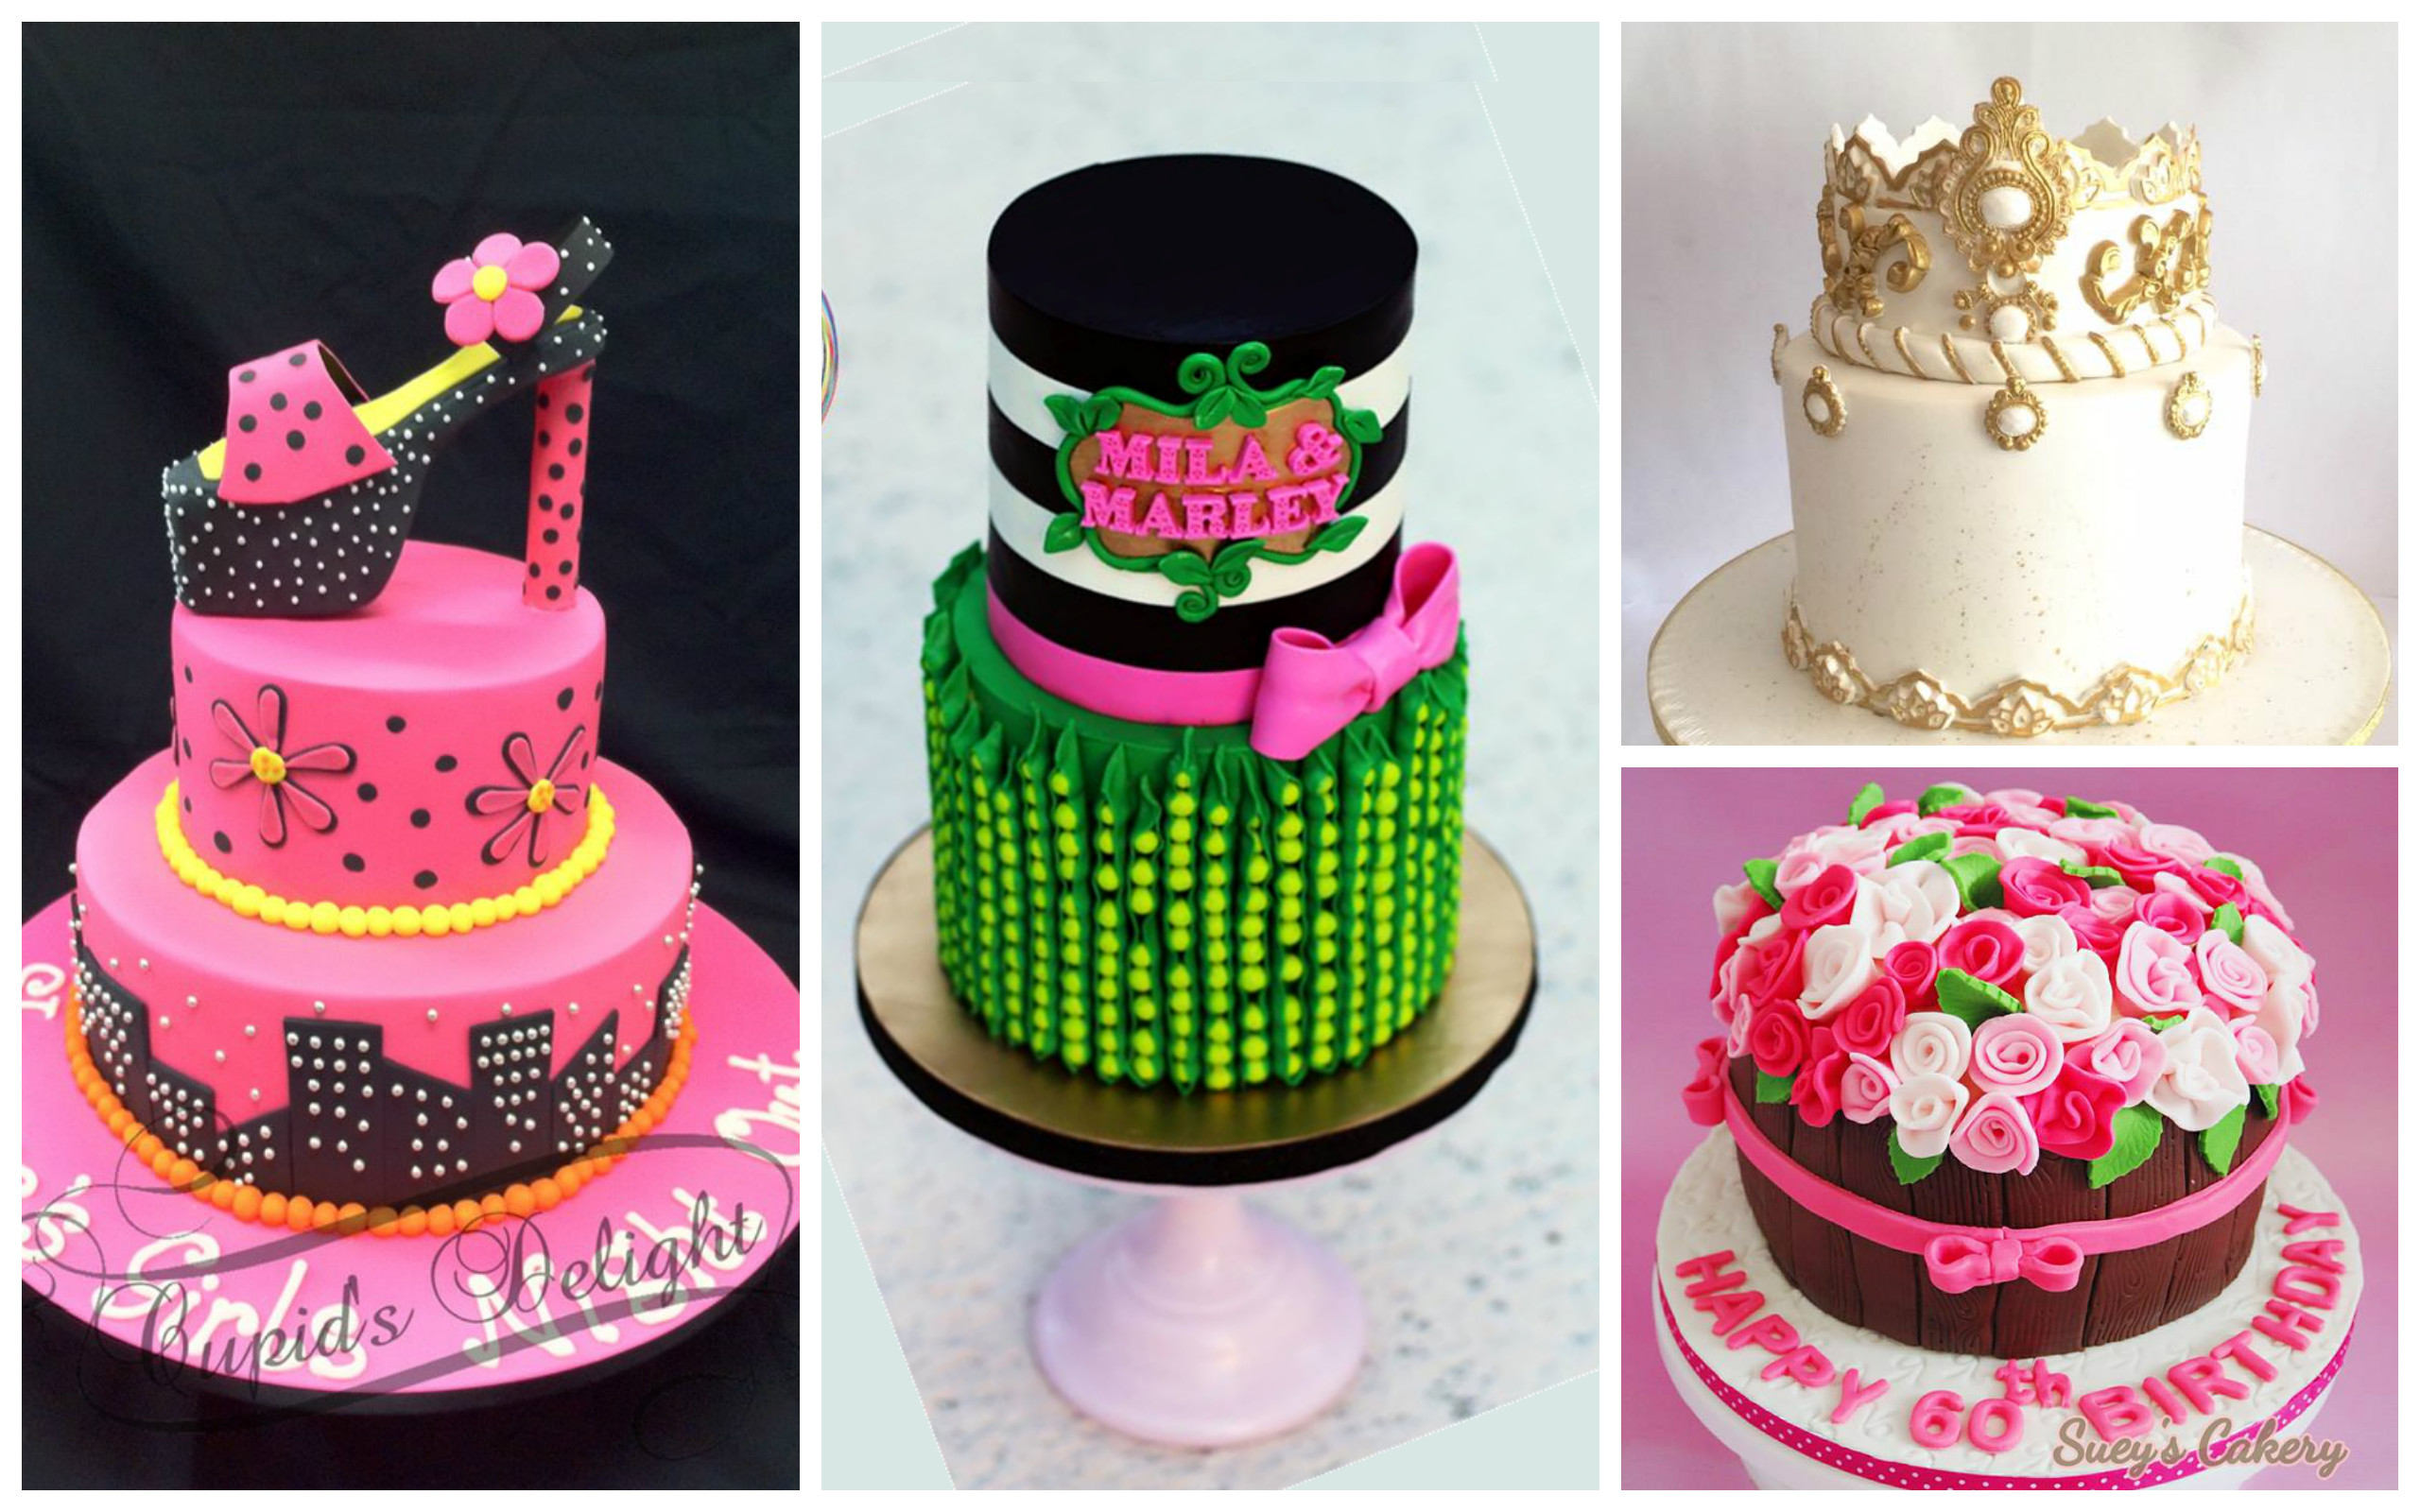 search for the highly professional cake artist in the world